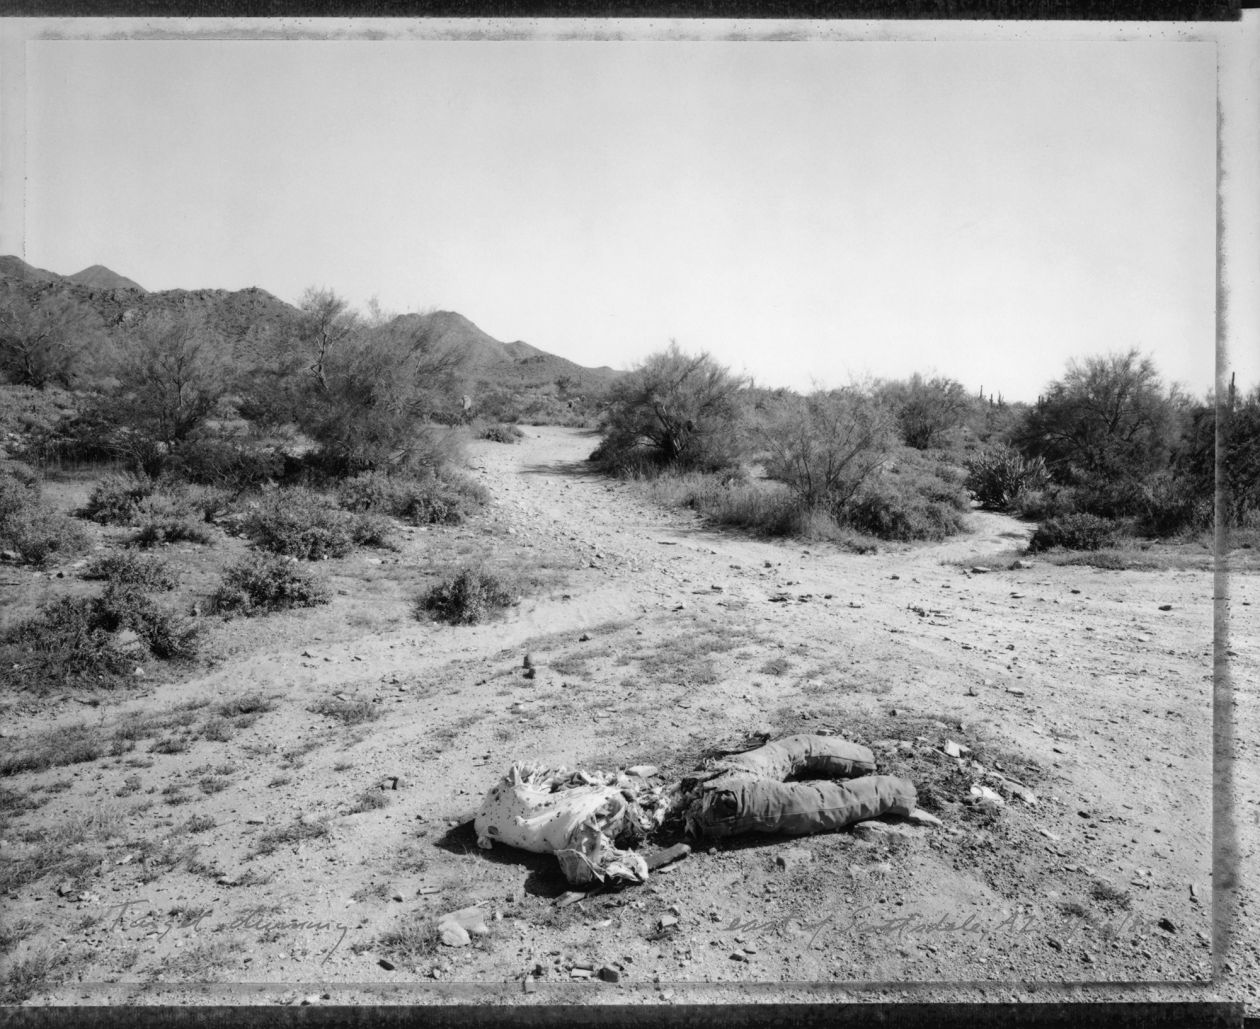 Target dummy, east of Scottsdale, Arizona 3/30/85 (1985) by Mark Klett